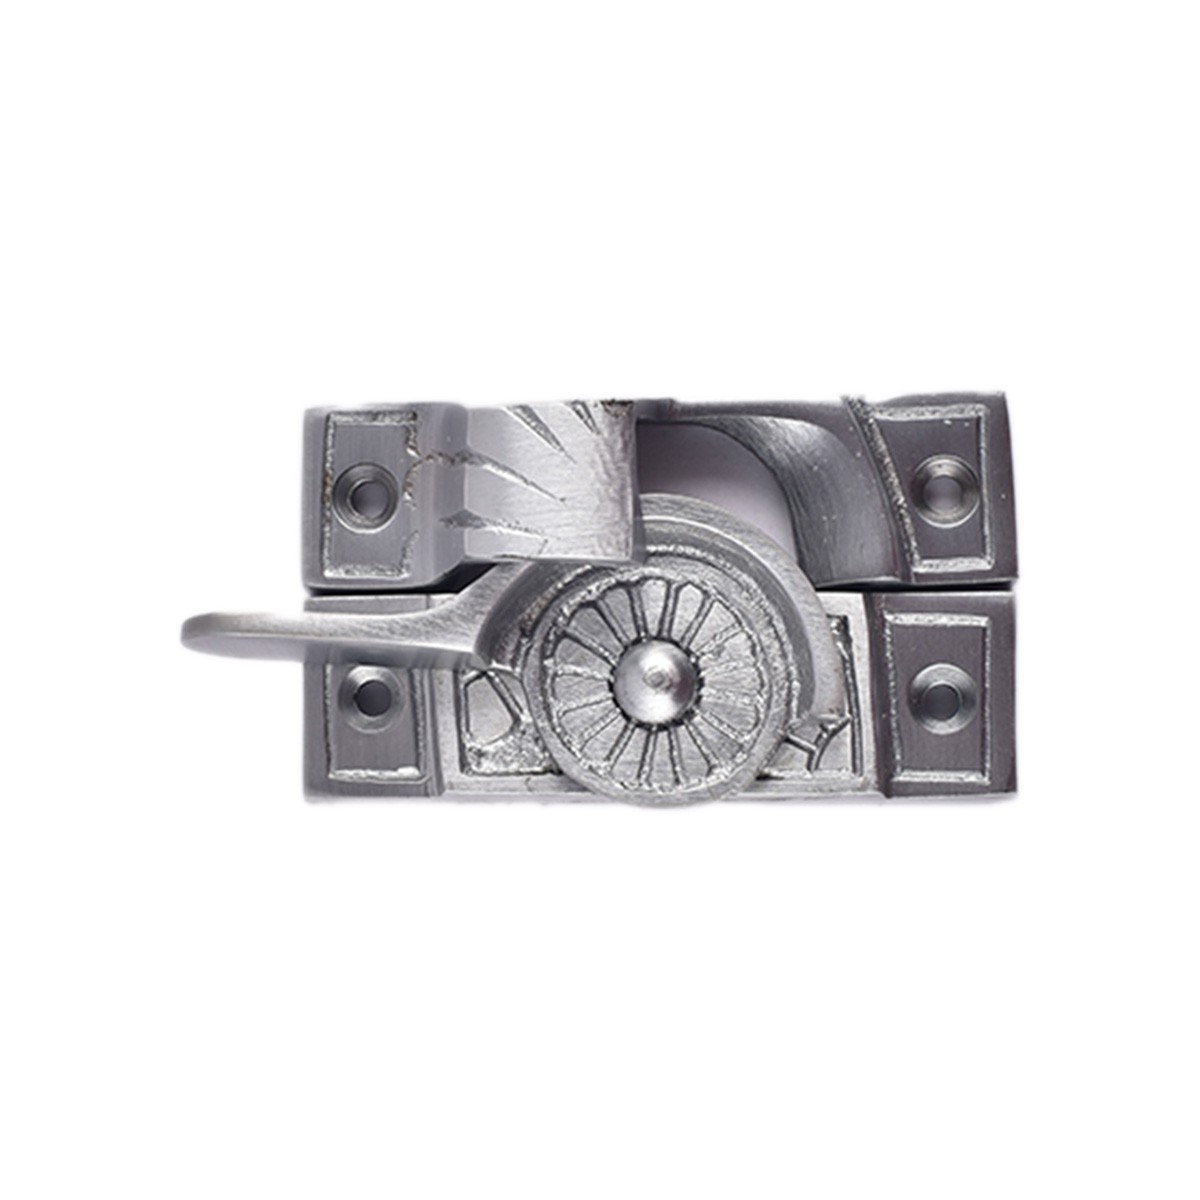 4 Ornate Solid Brass Window Sash Lock Satin Chrome Window Sash Lock Satin Window Sash Catch Sash Lift